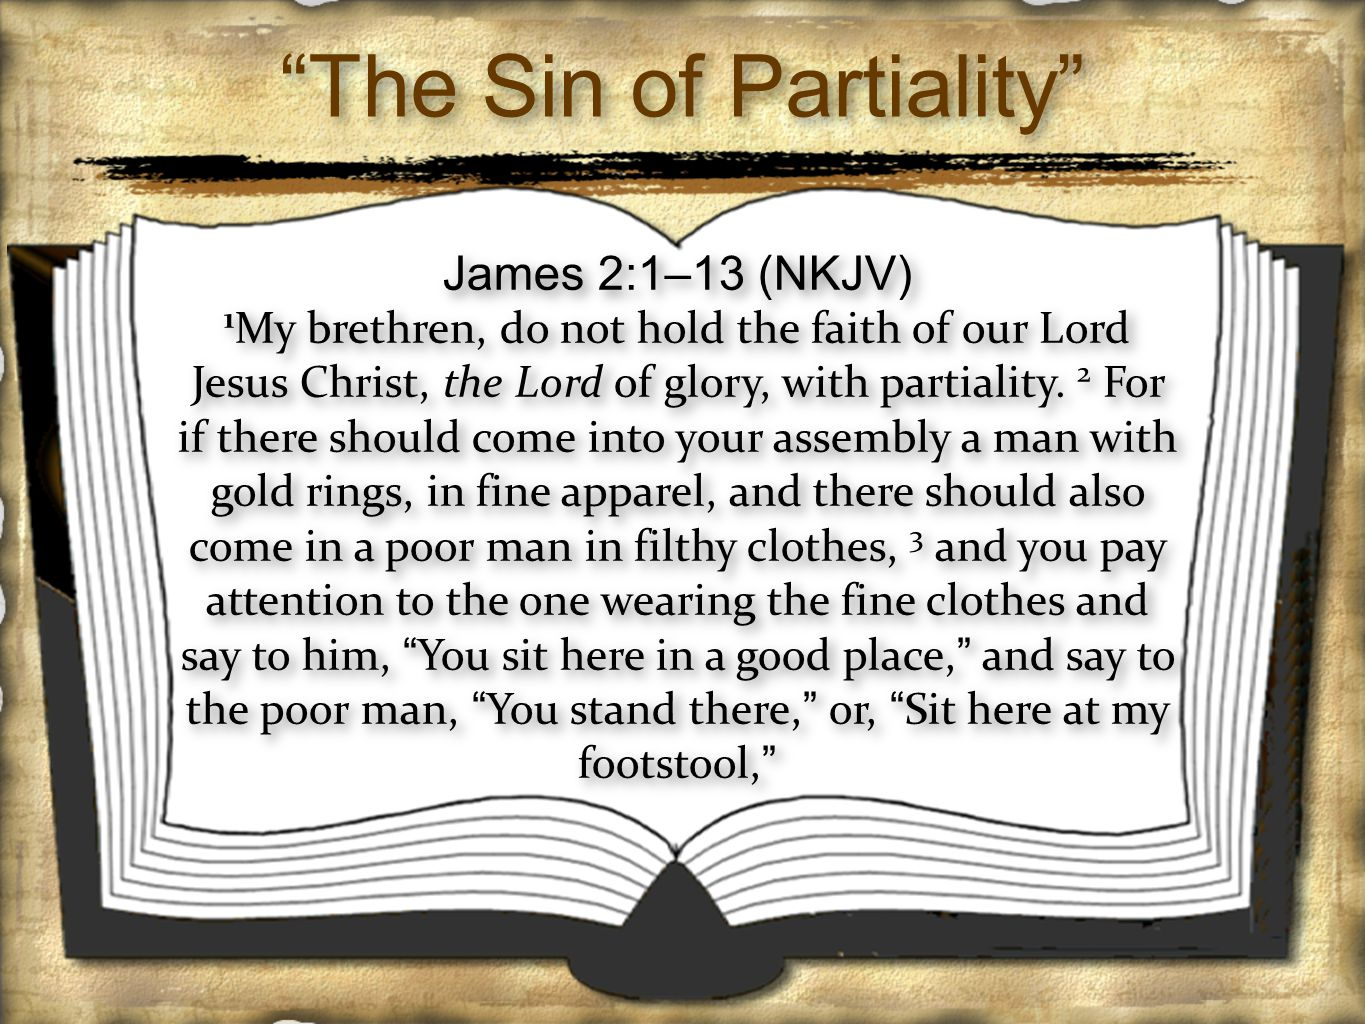 The Sin of Partiality James 2:1–13 (NKJV) 1 My brethren, do not hold the faith of our Lord Jesus Christ, the Lord of glory, with partiality.